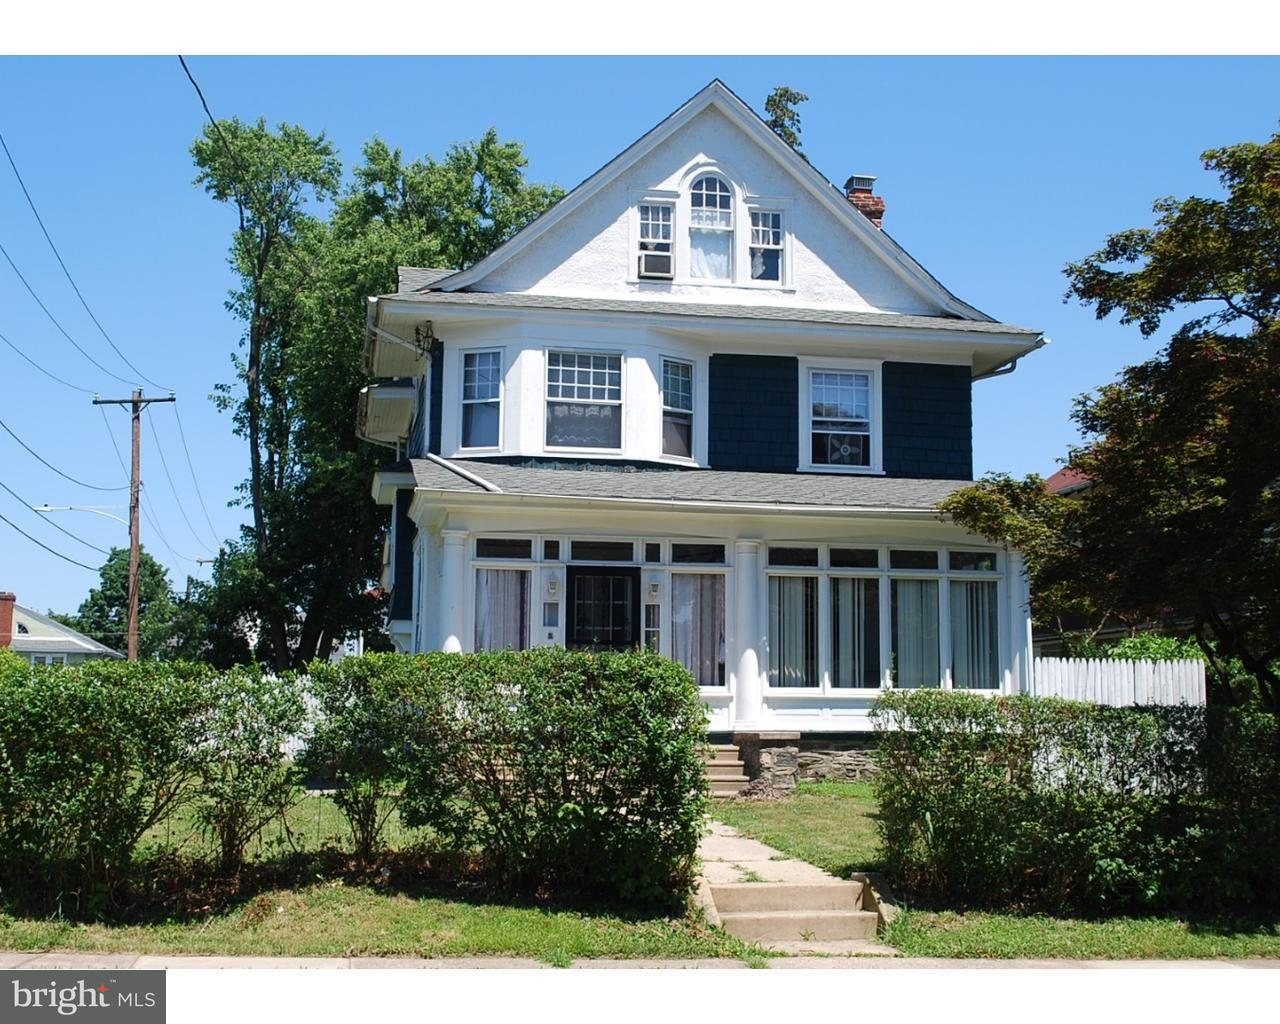 7017 SELLERS AVE, UPPER DARBY - Listed at $195,000, UPPER DARBY